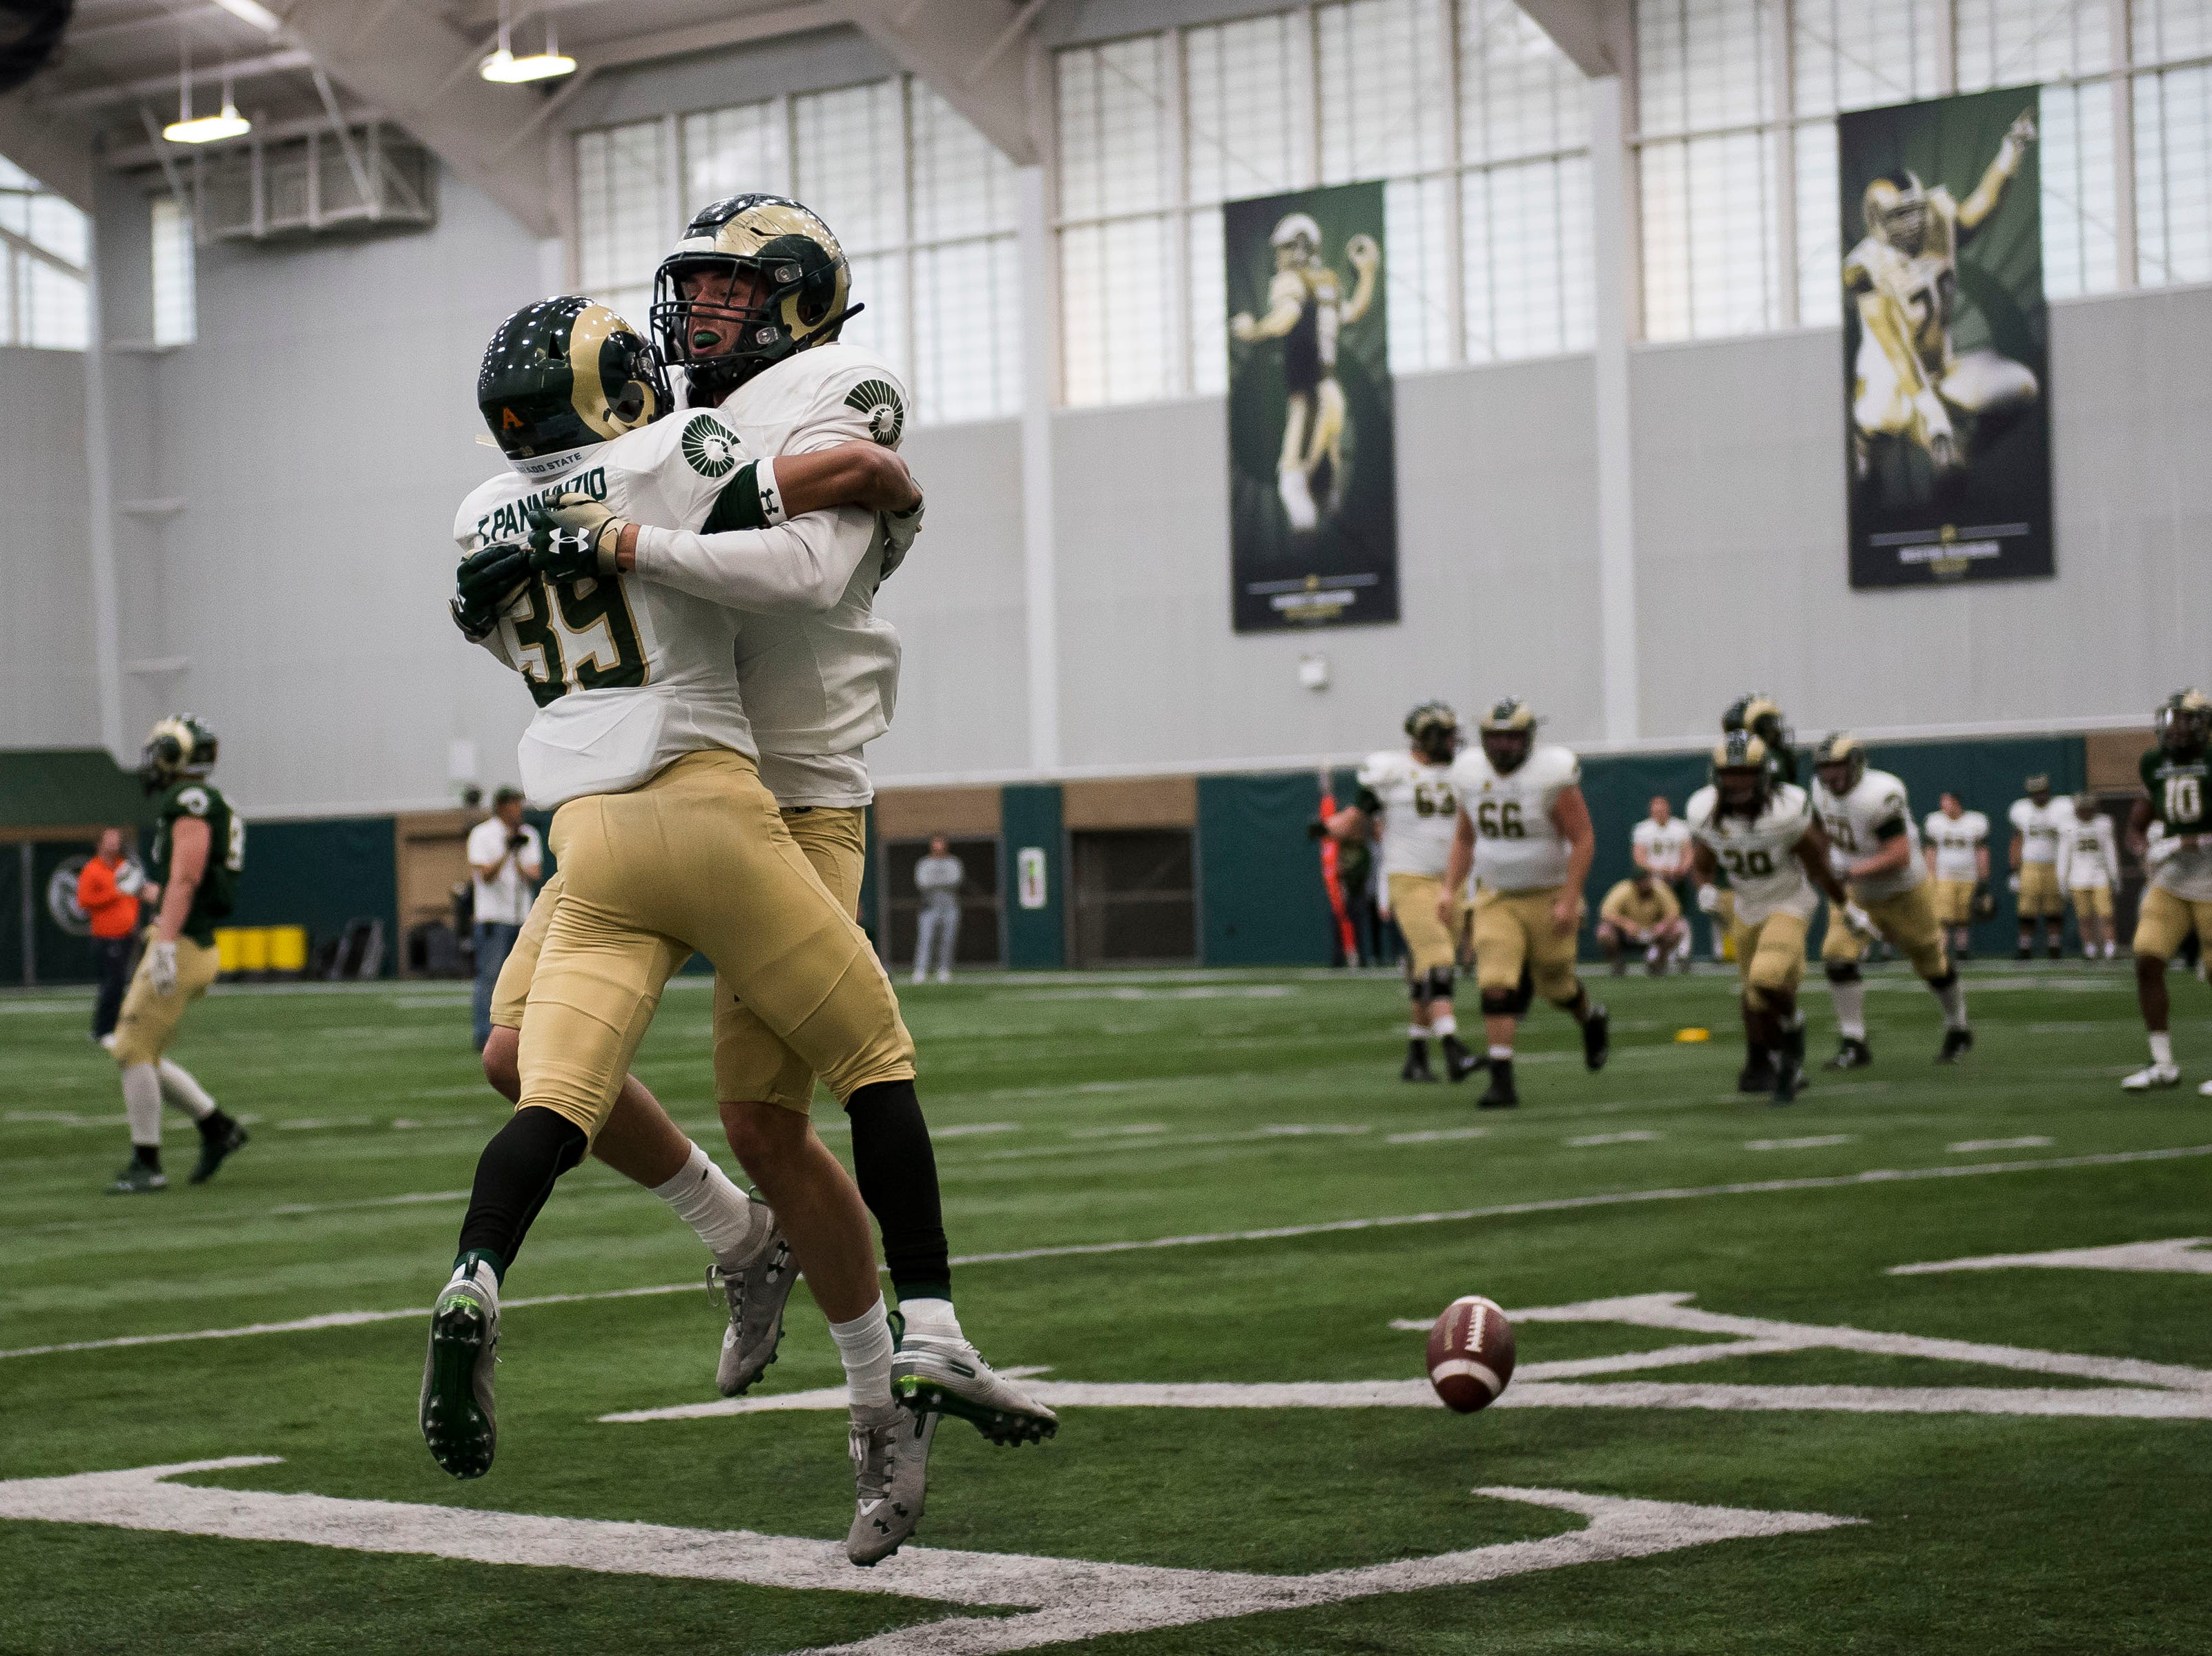 CSU sophomore receiver Thomas Pannunzio (39) celebrates a touchdown reception by sophomore tight end Griffin Hammer (88) during CSU's Spring game on Thursday, March 14, 2019, at their indoor practice facility in Fort Collins, Colo.